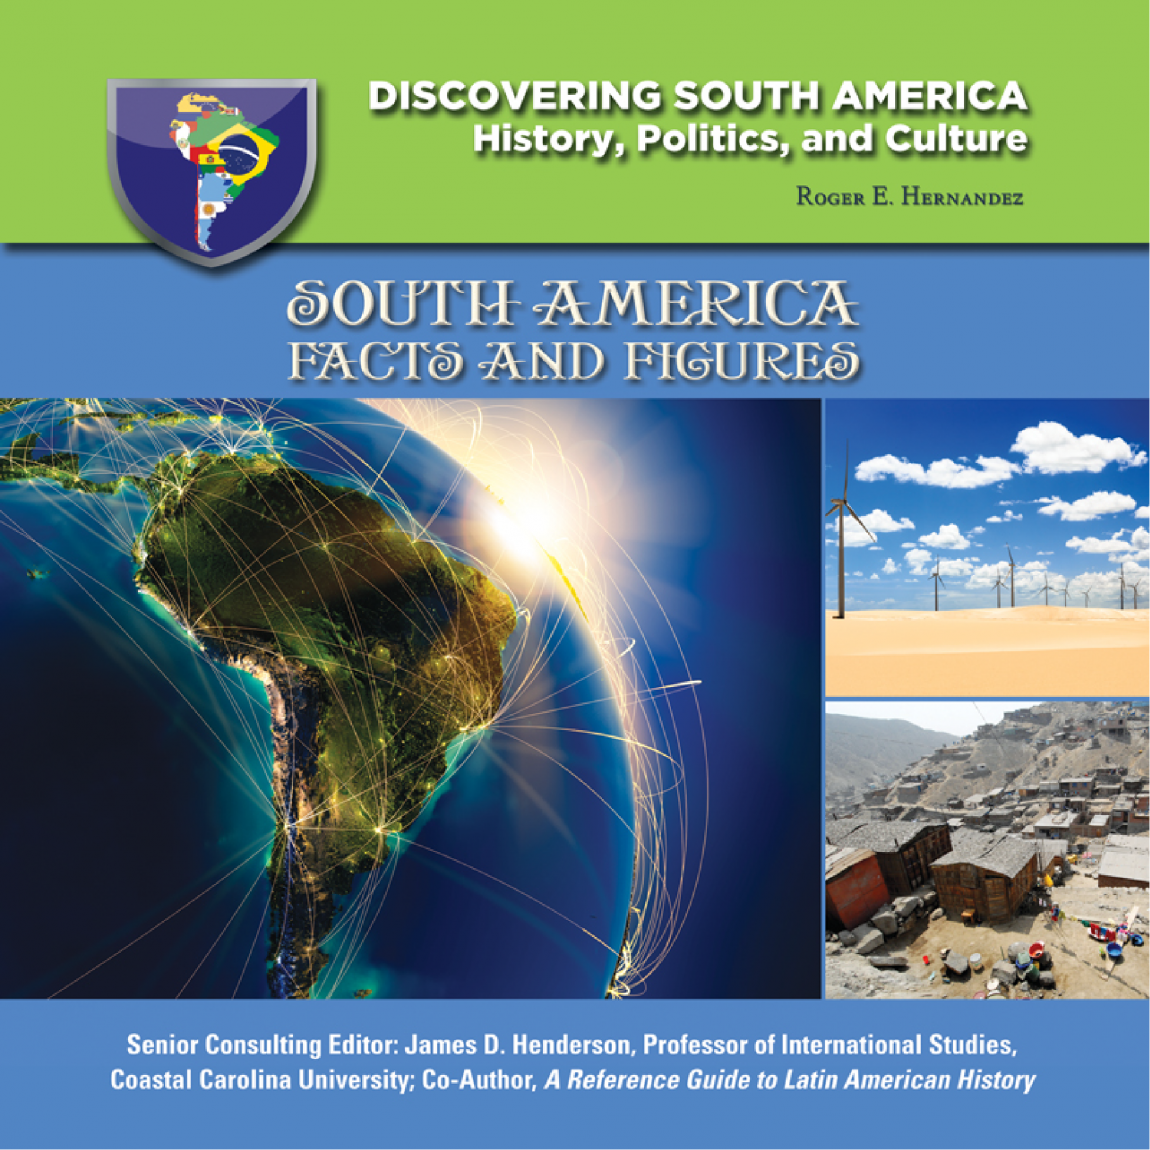 south-africa-FACTS-FIGURES-01.png